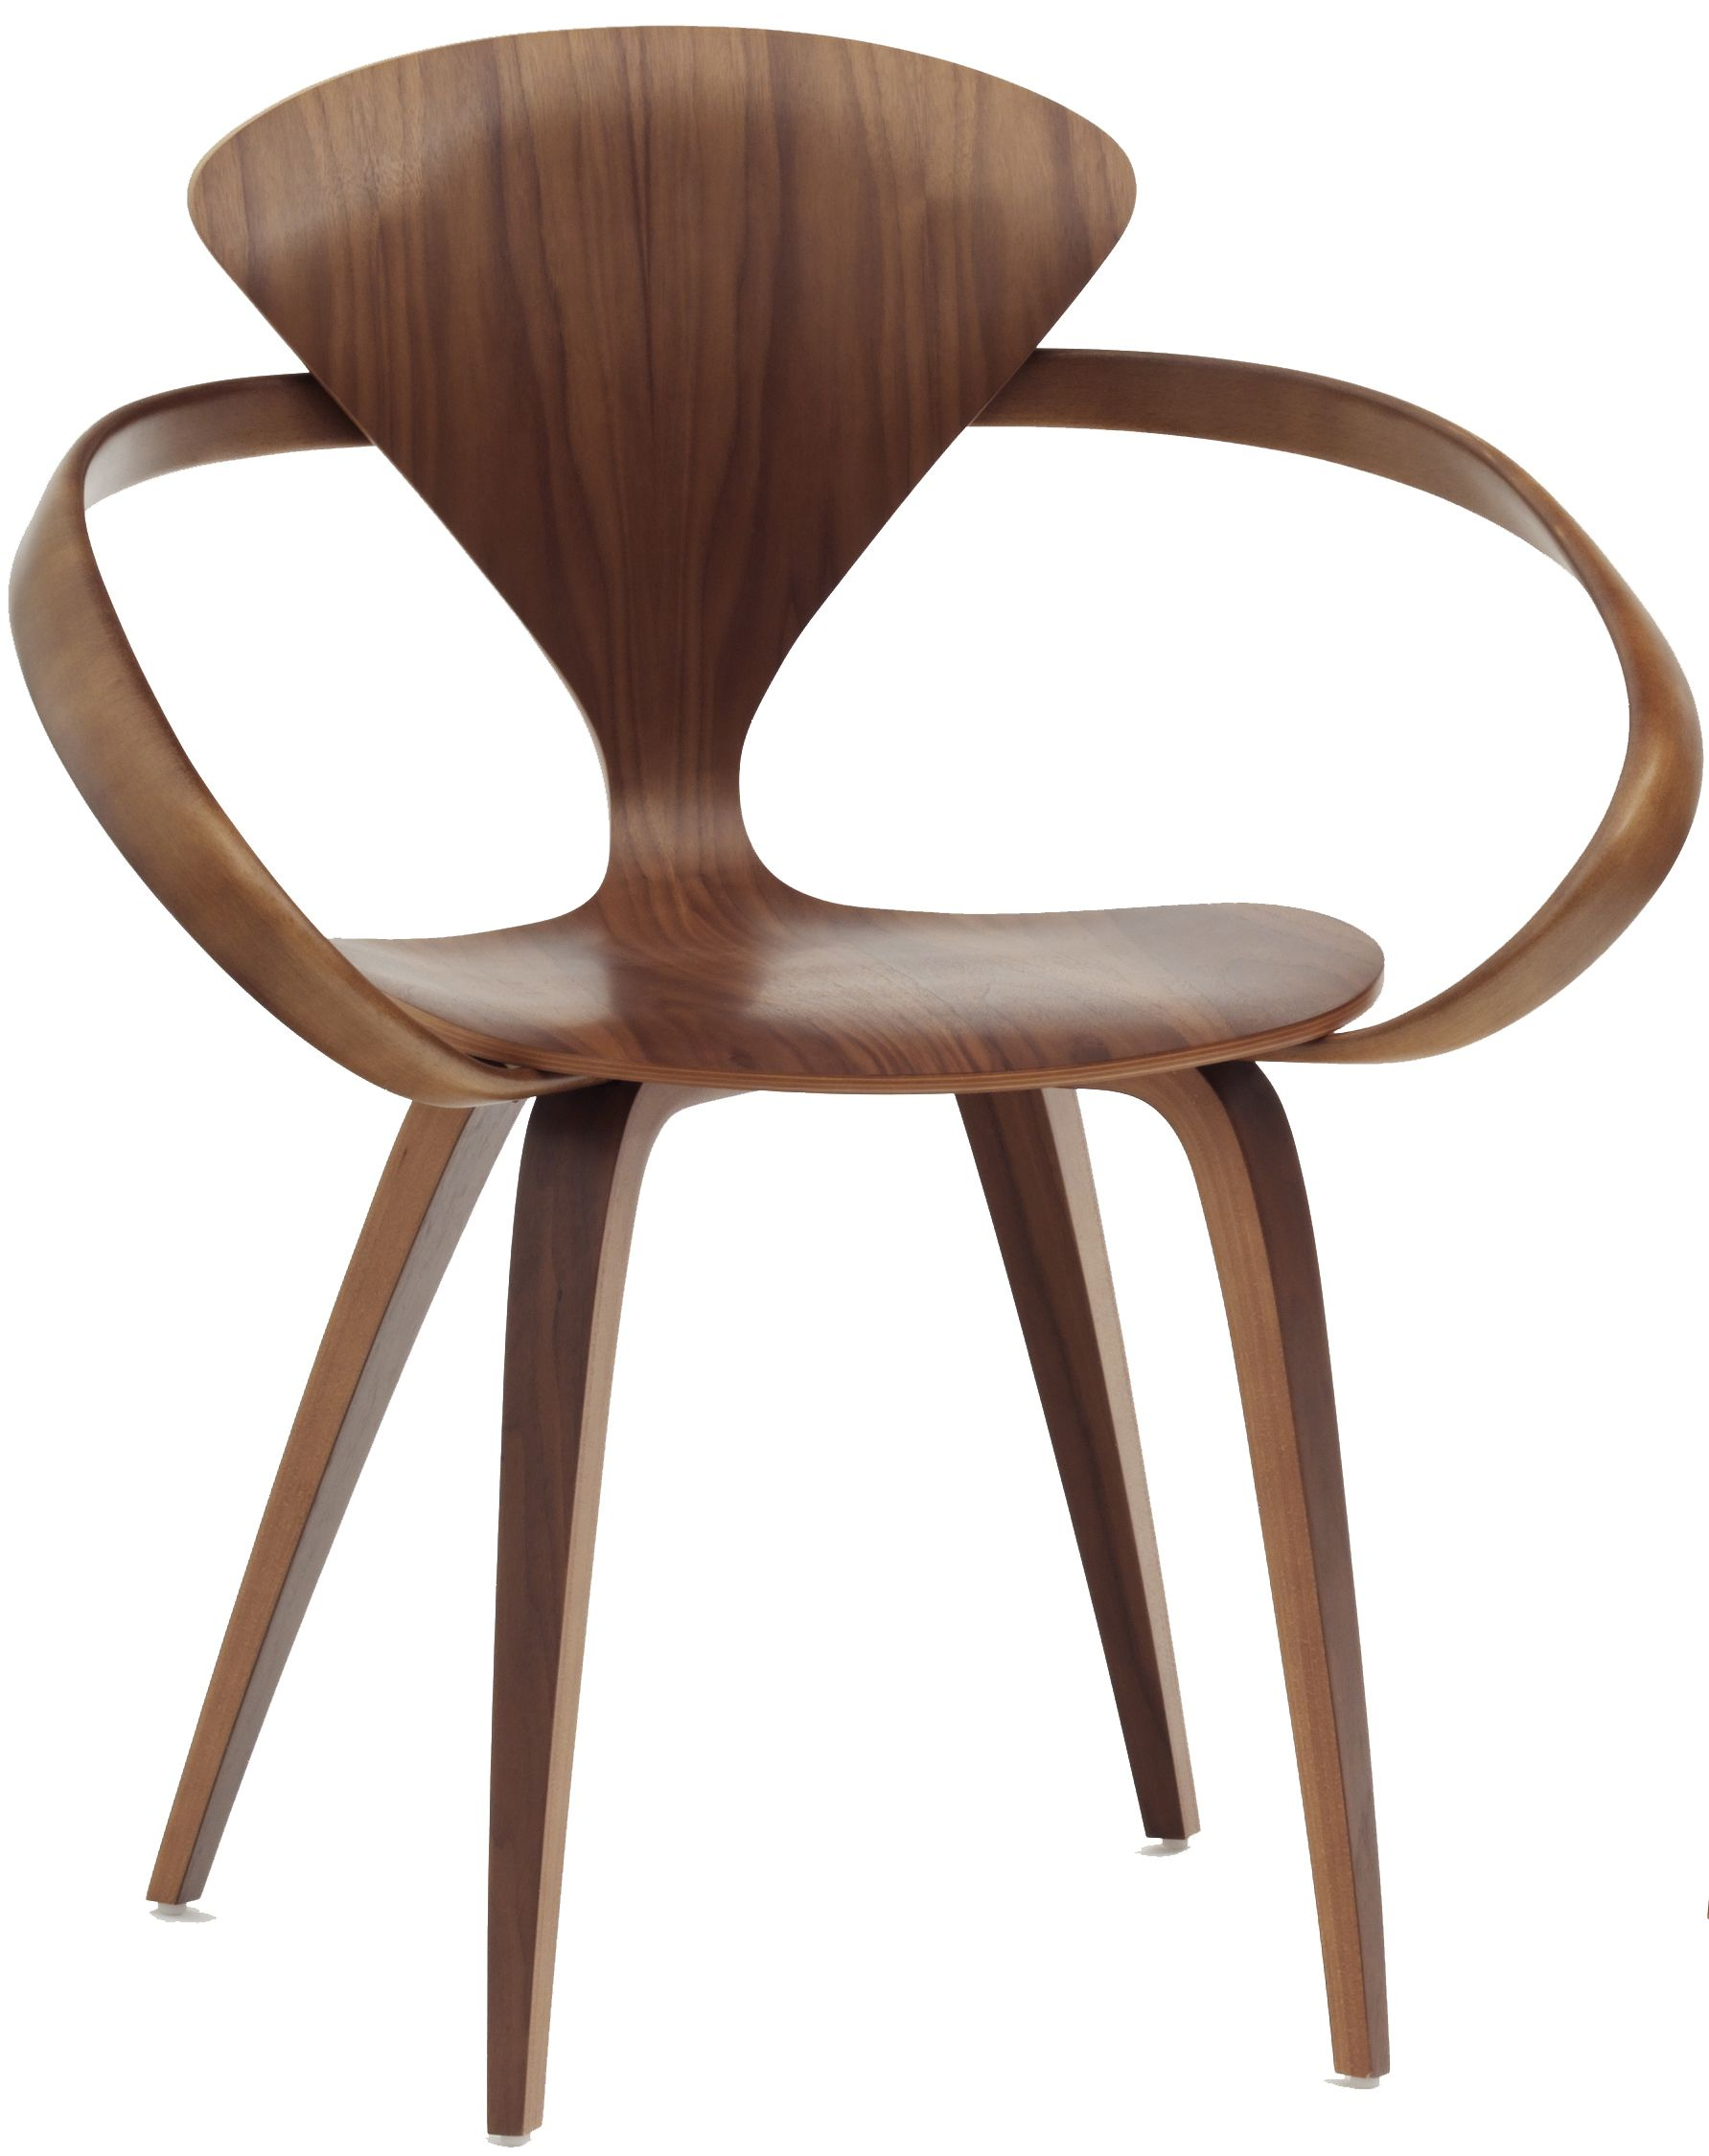 Cherner Dining Chair For Kitchen Nook